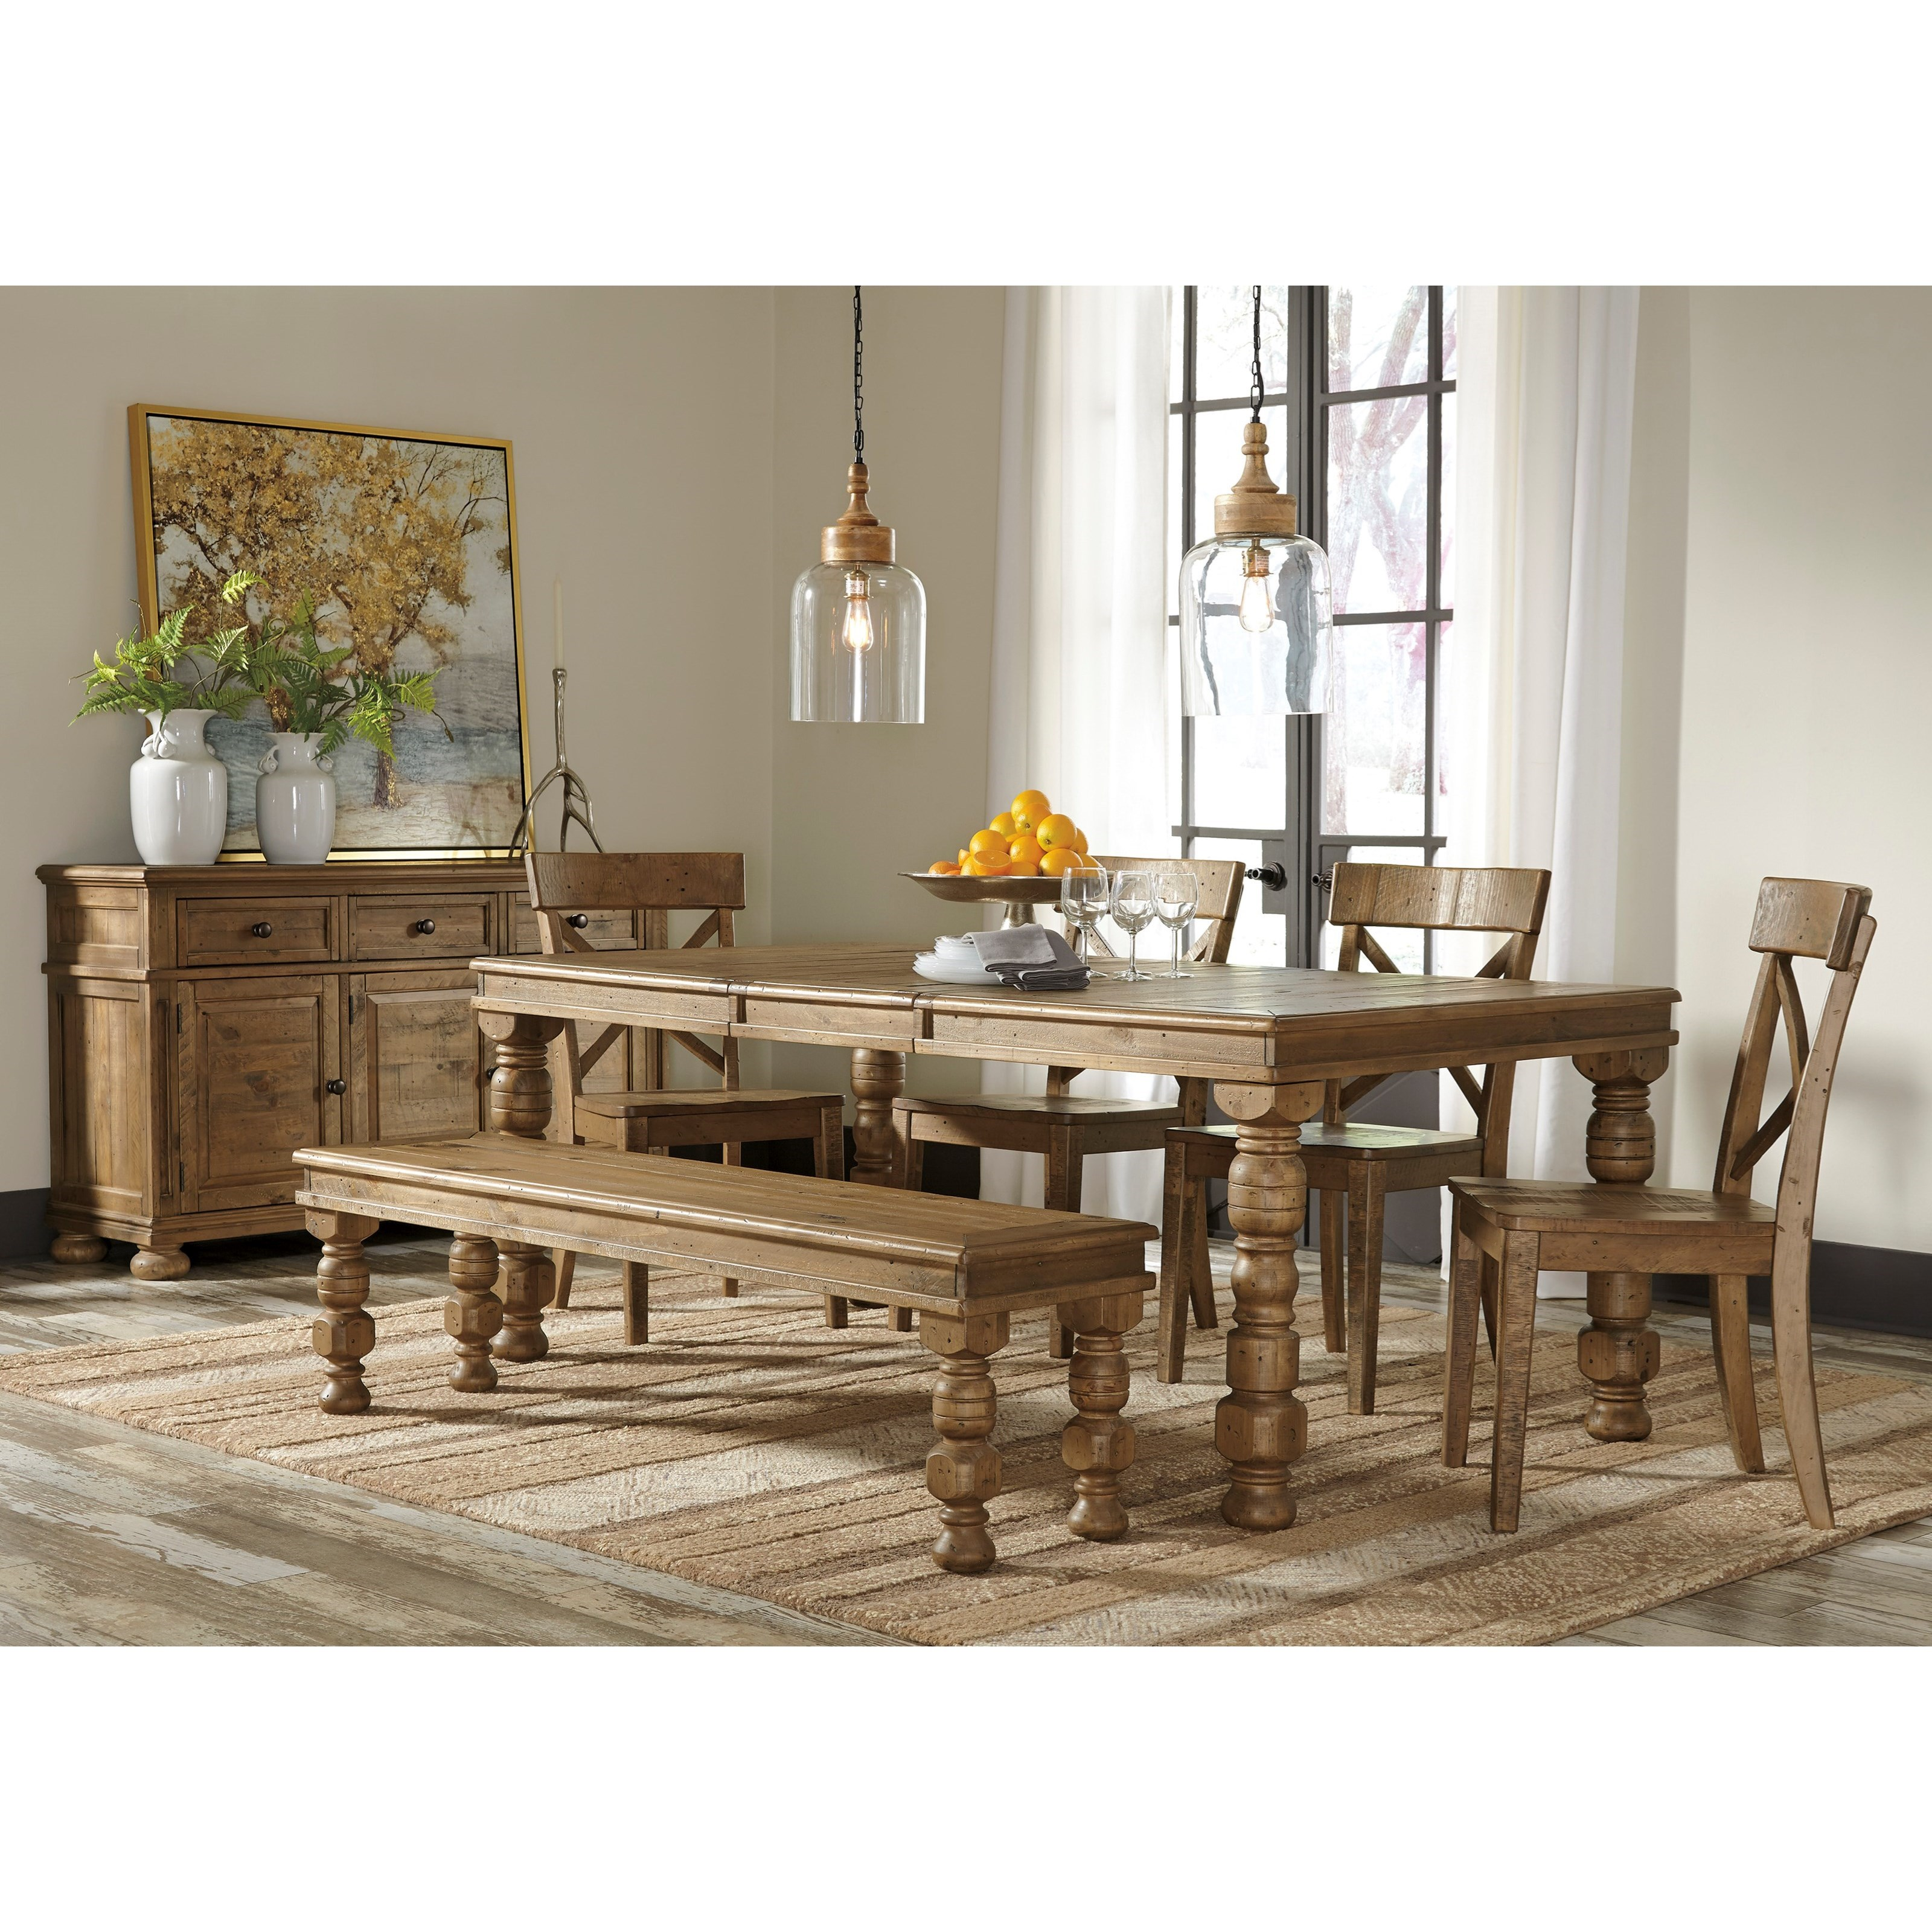 Signature Design by Ashley Trishley Casual Dining Room Group - Item Number: D659 Dining Room Group 2